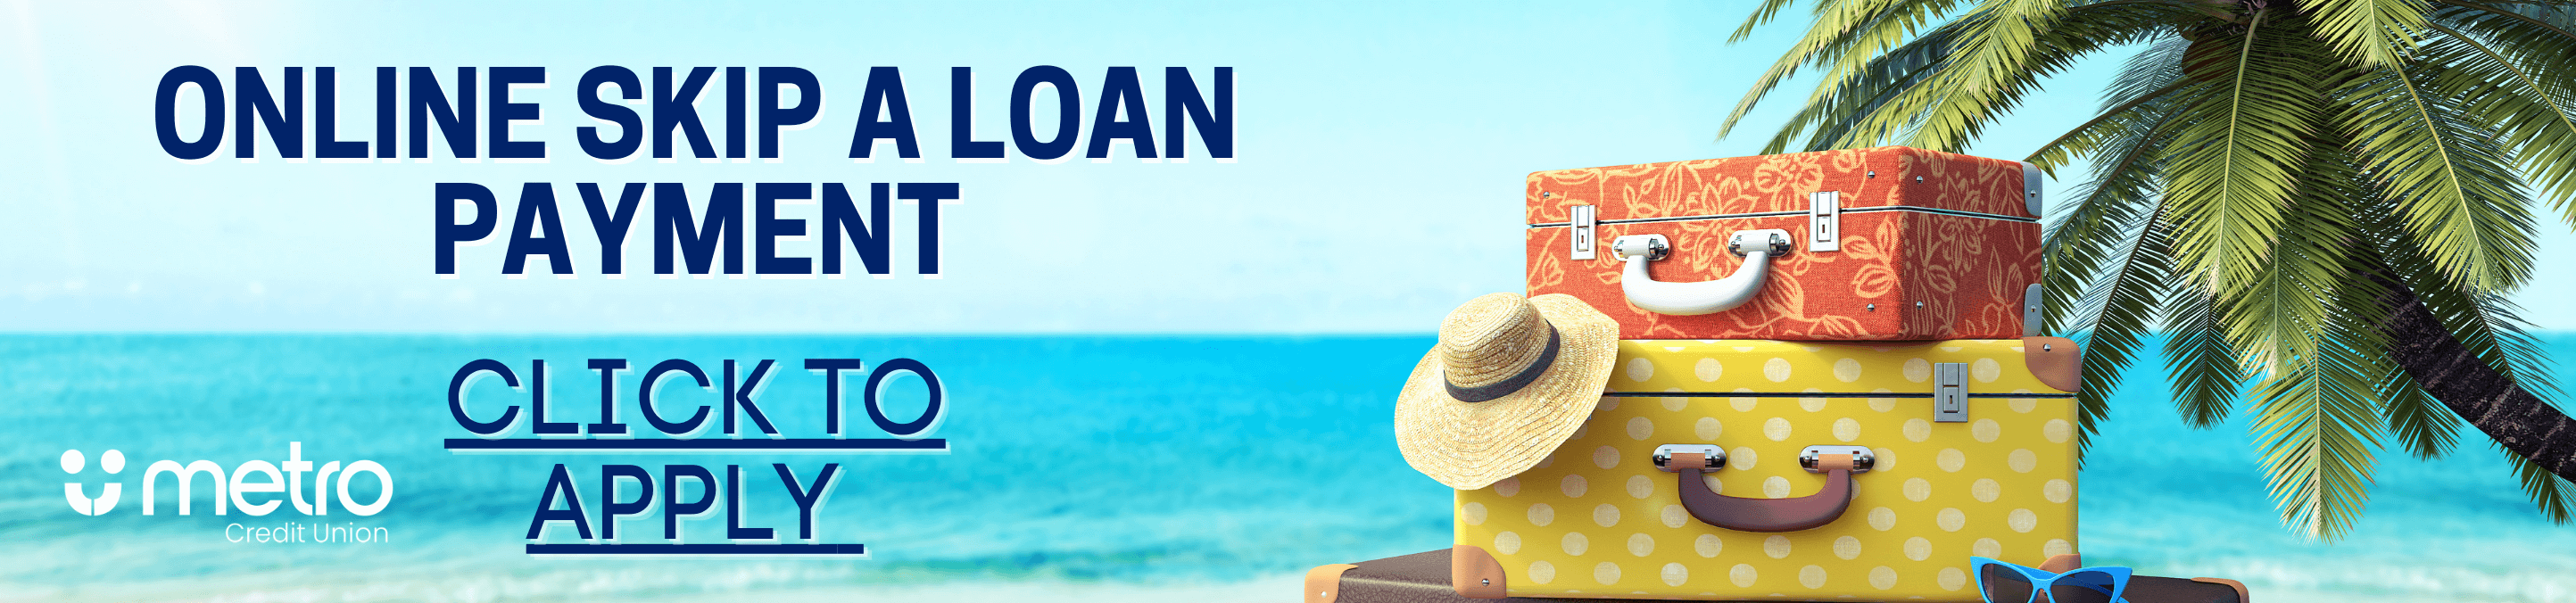 Skip-A-Loan Payment